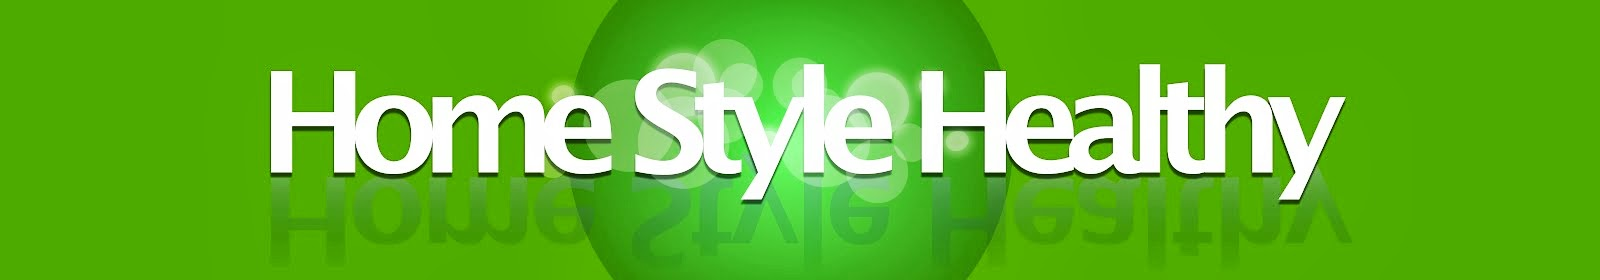 Home Style Healthy - Get Tidy